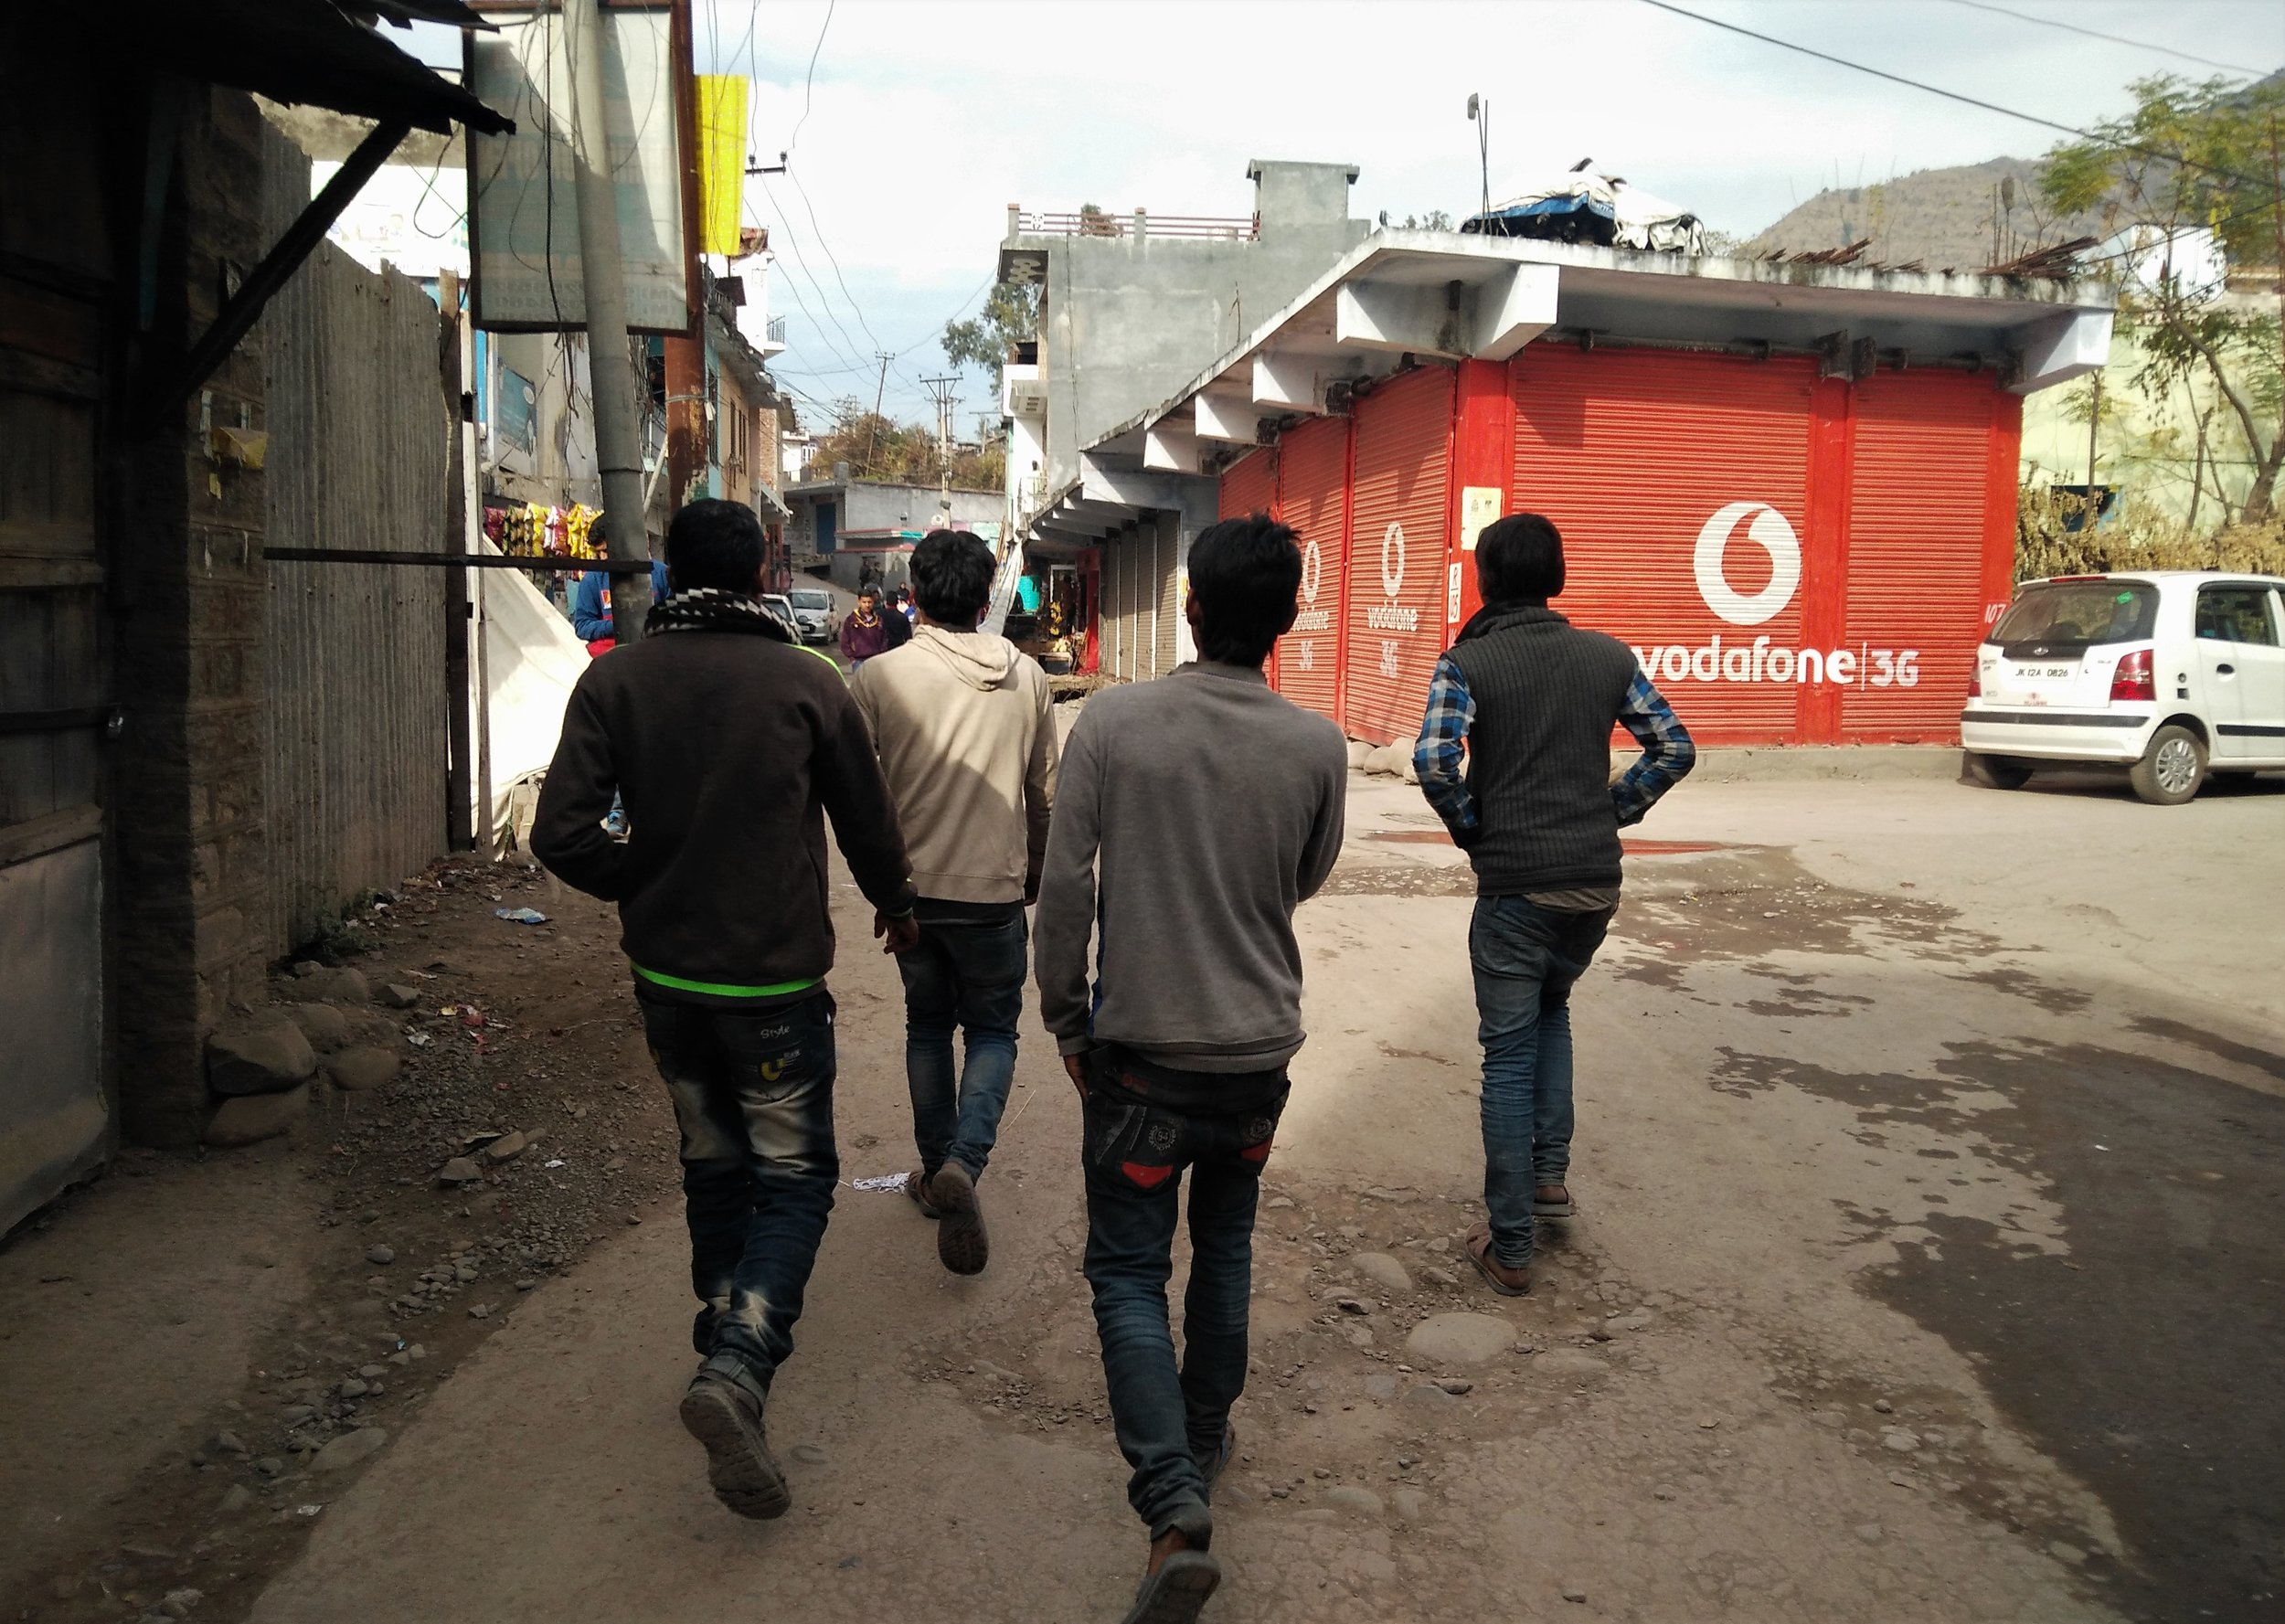 Four young migrant workers head towards the house of their contractor for pay in the times after high denomination notes were demonetized by the central government. Credit: Ankur Jayaswal